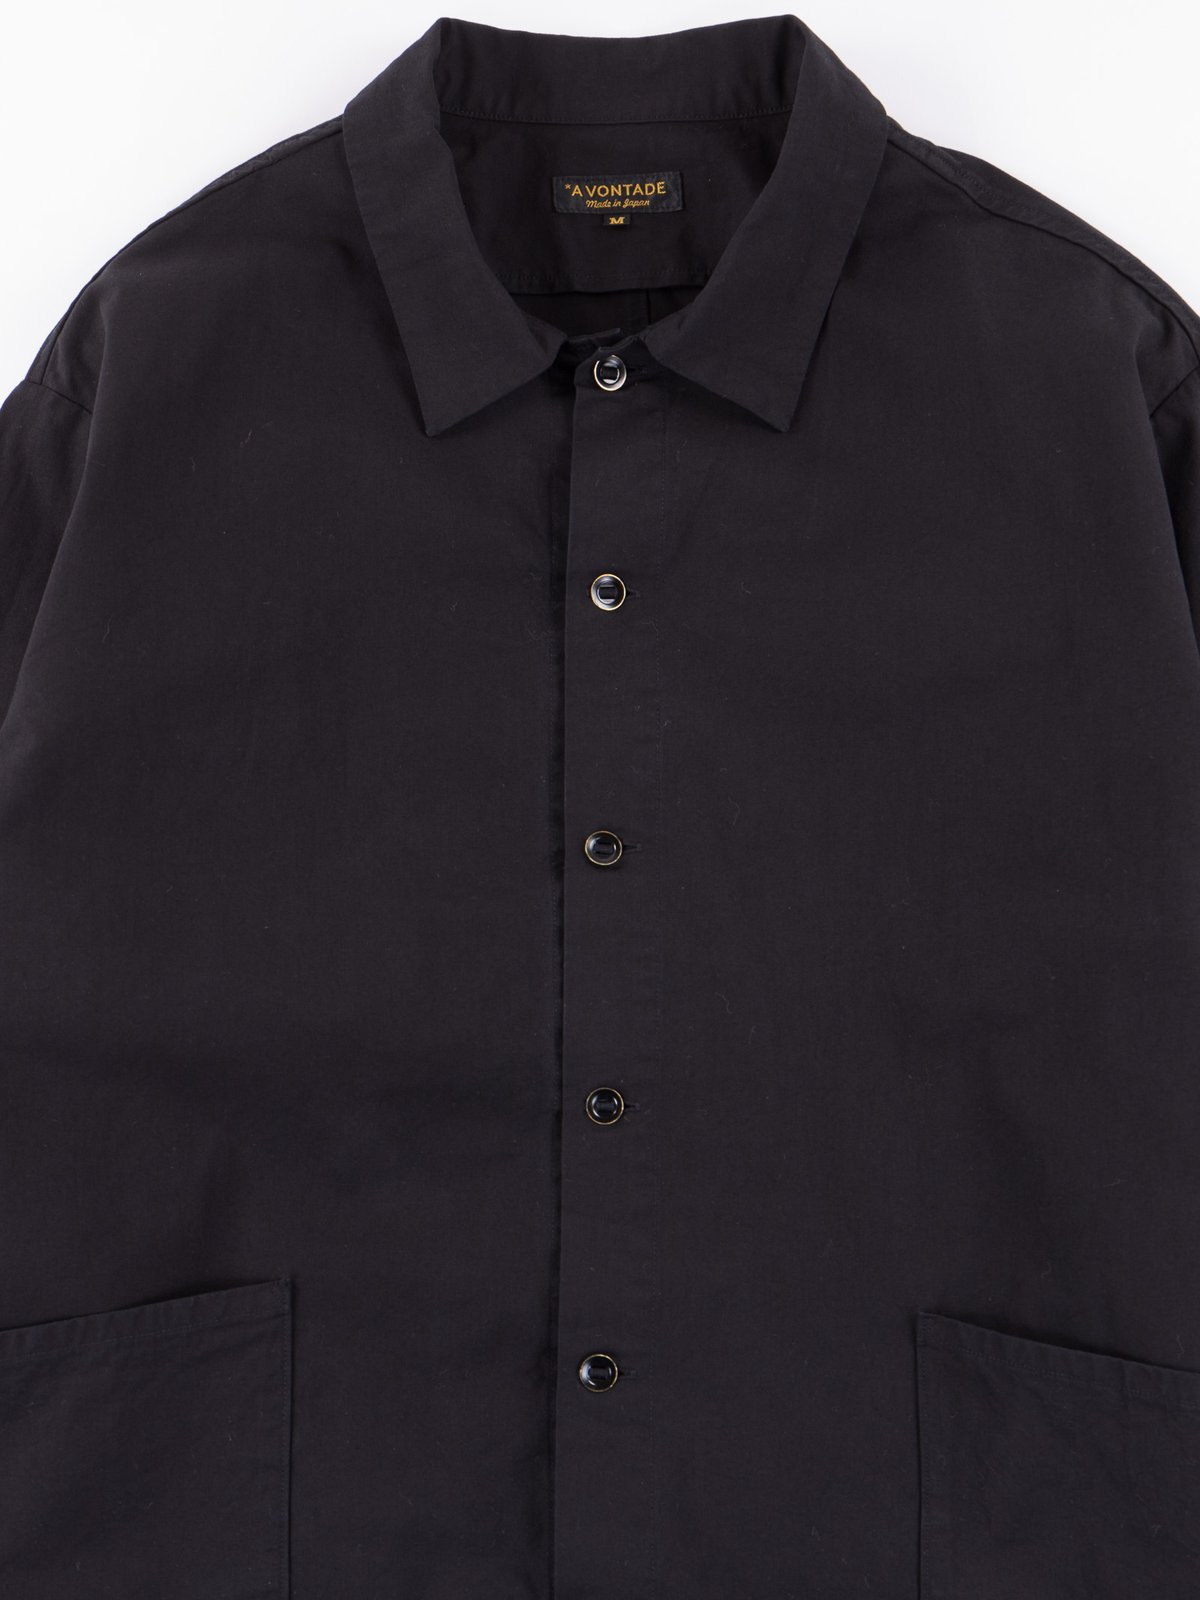 Black Gardener Shirt Jacket - Image 2